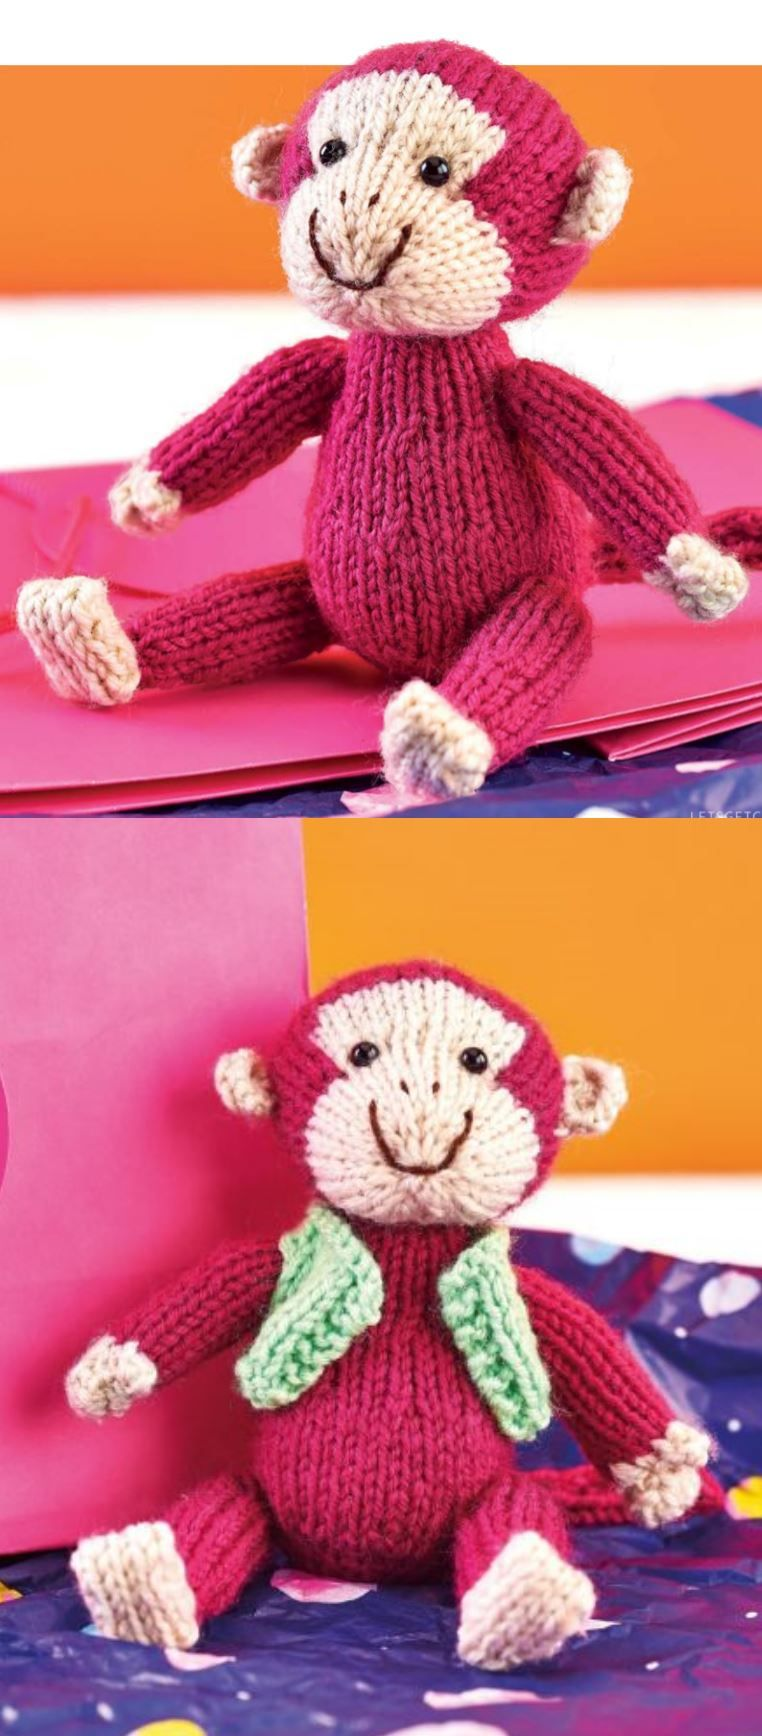 Free Knitting Pattern for a Monkey Toy